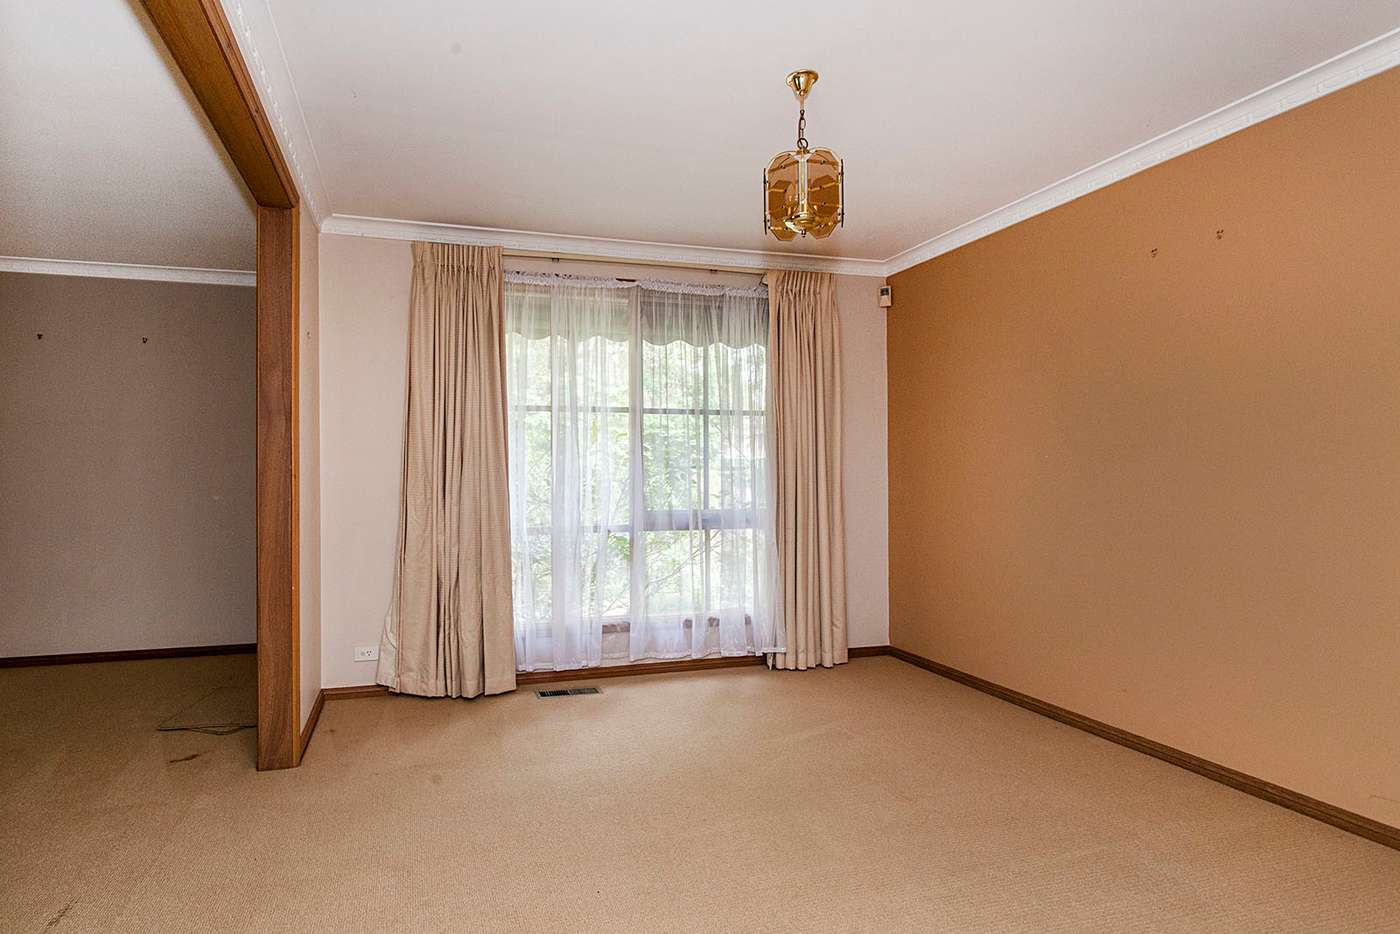 Sixth view of Homely unit listing, 1/35 Morden Court, Nunawading VIC 3131